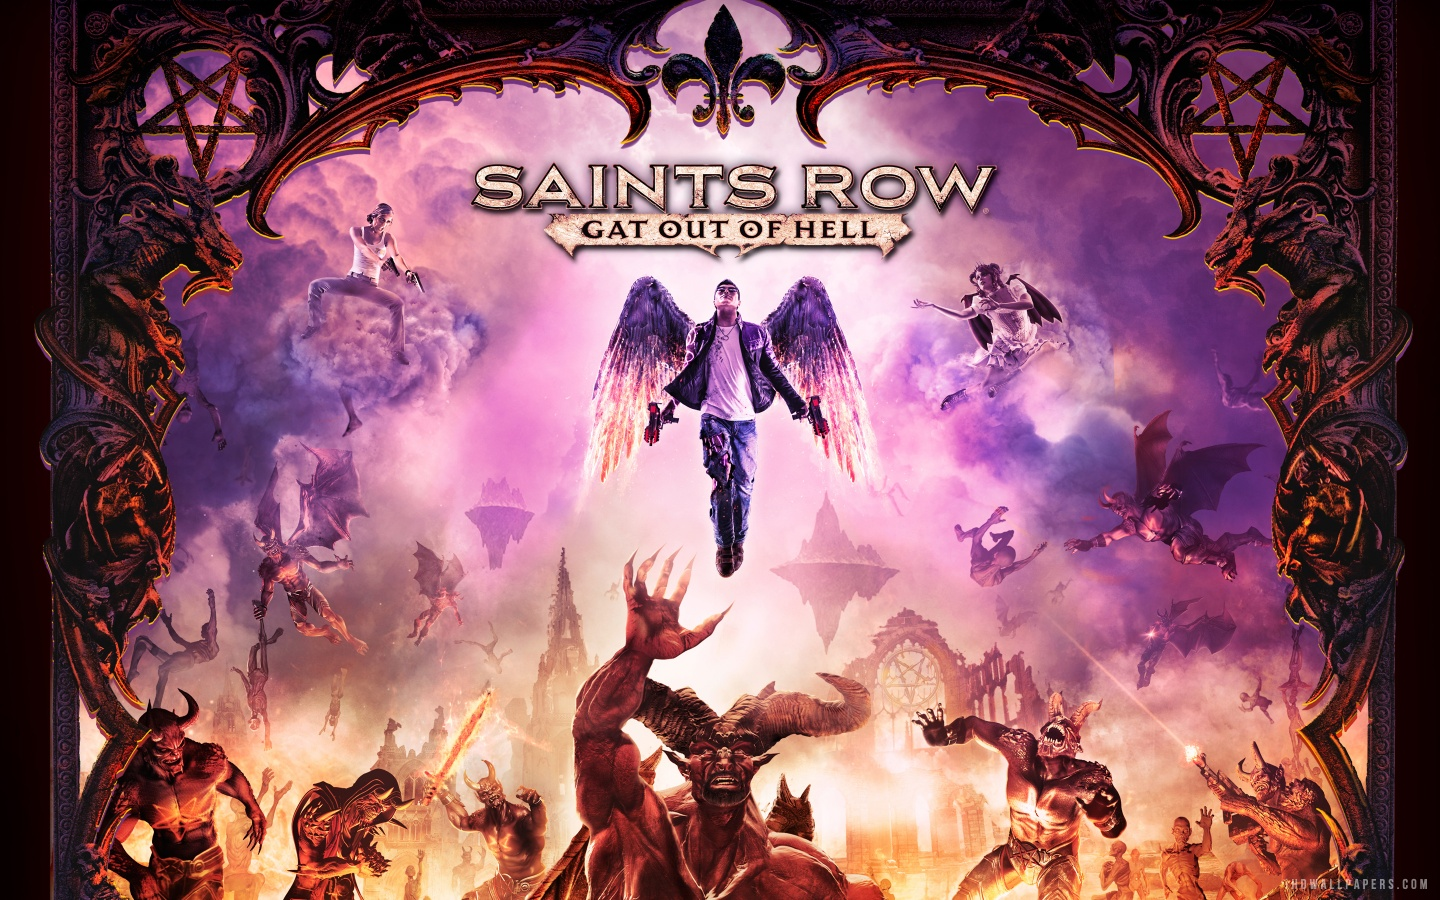 Saints Row IV Gat Out of Hell HD Wallpaper   iHD Wallpapers 1440x900